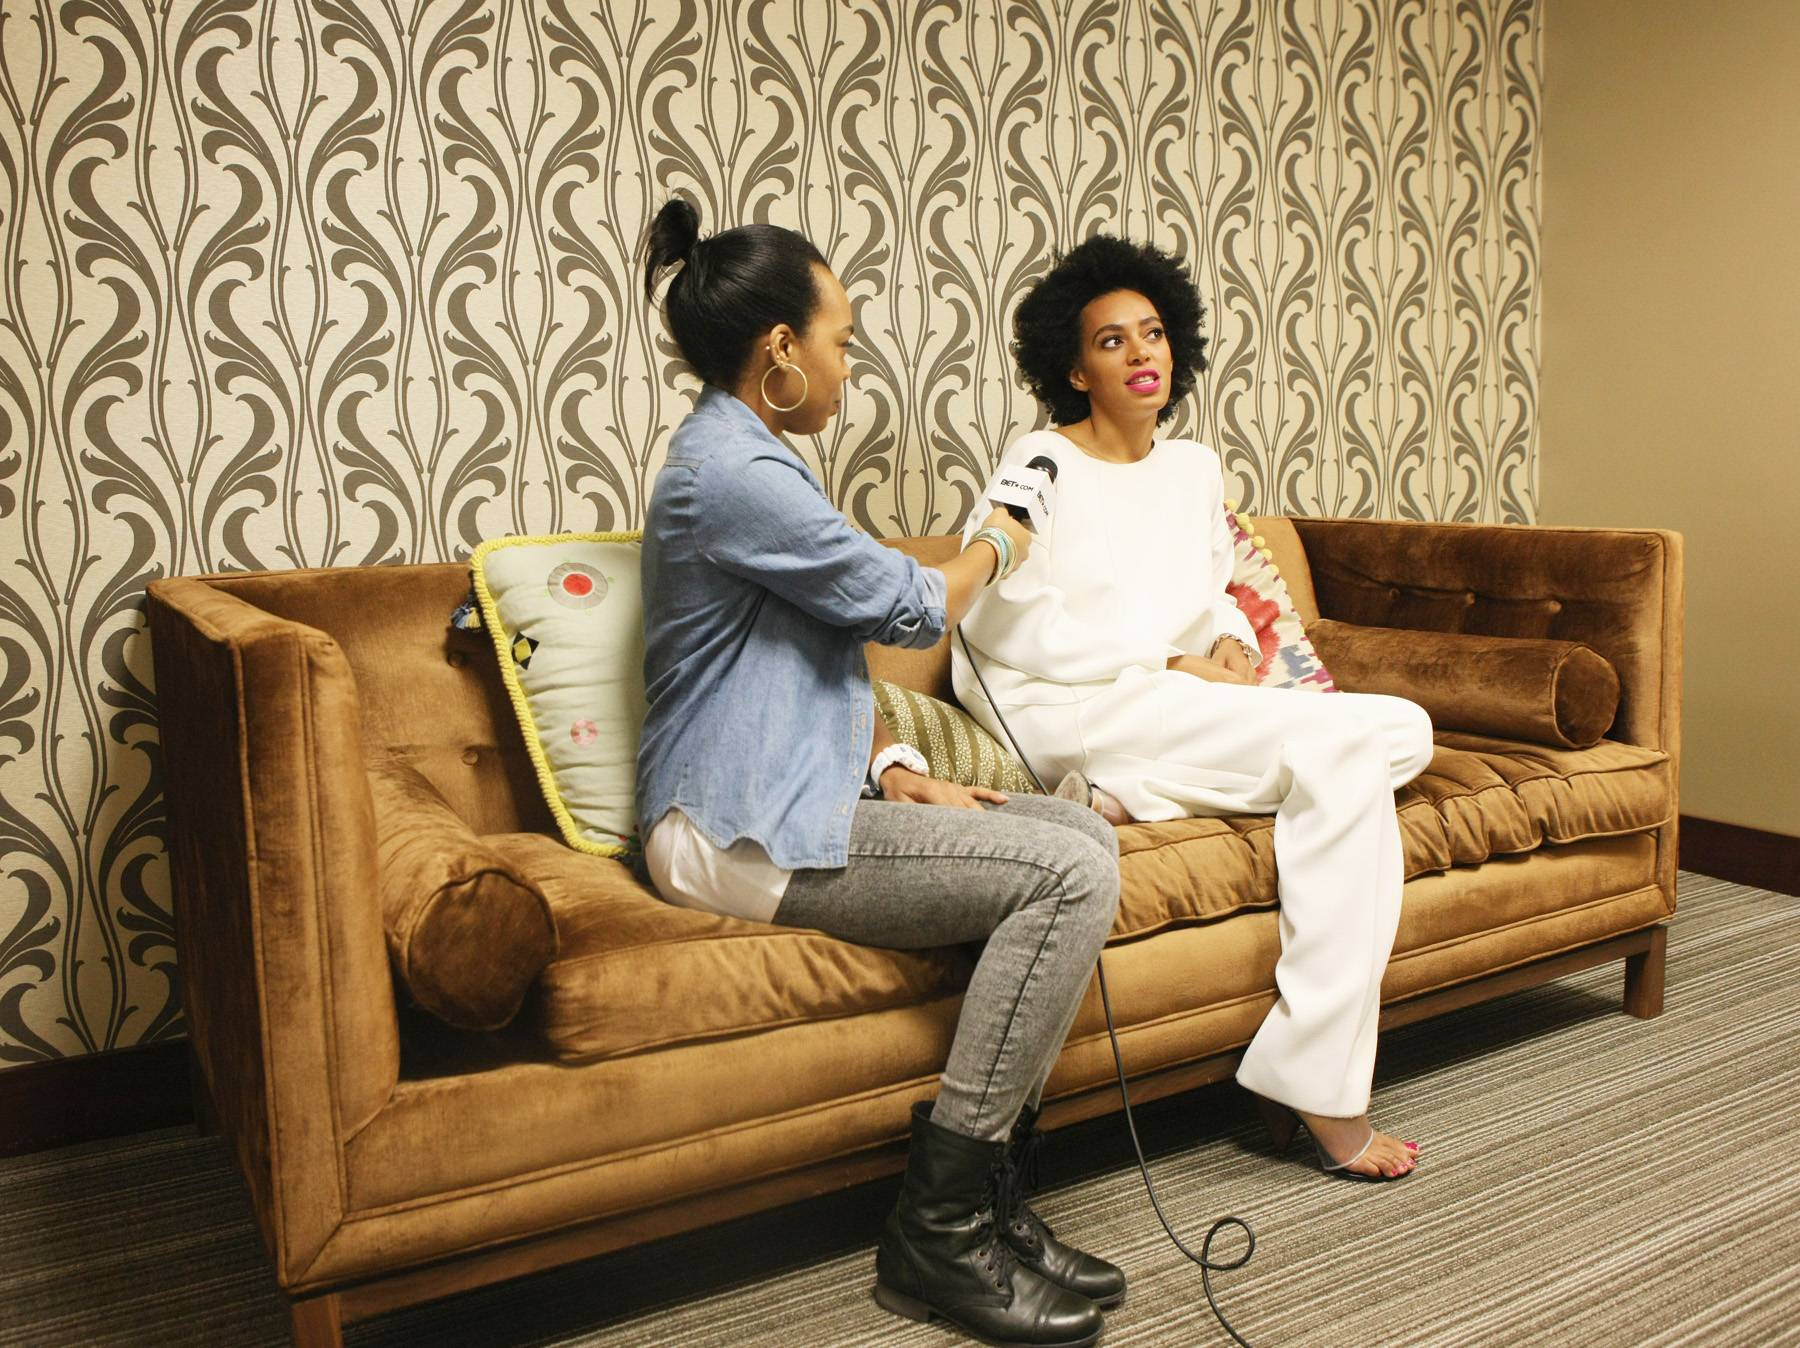 Talk Back - Taj Rani of BET.com with Solange Knowles, asking about her new EP True backstage at 106.(Photo: Bennett Raglin/BET/Getty Images for BET)